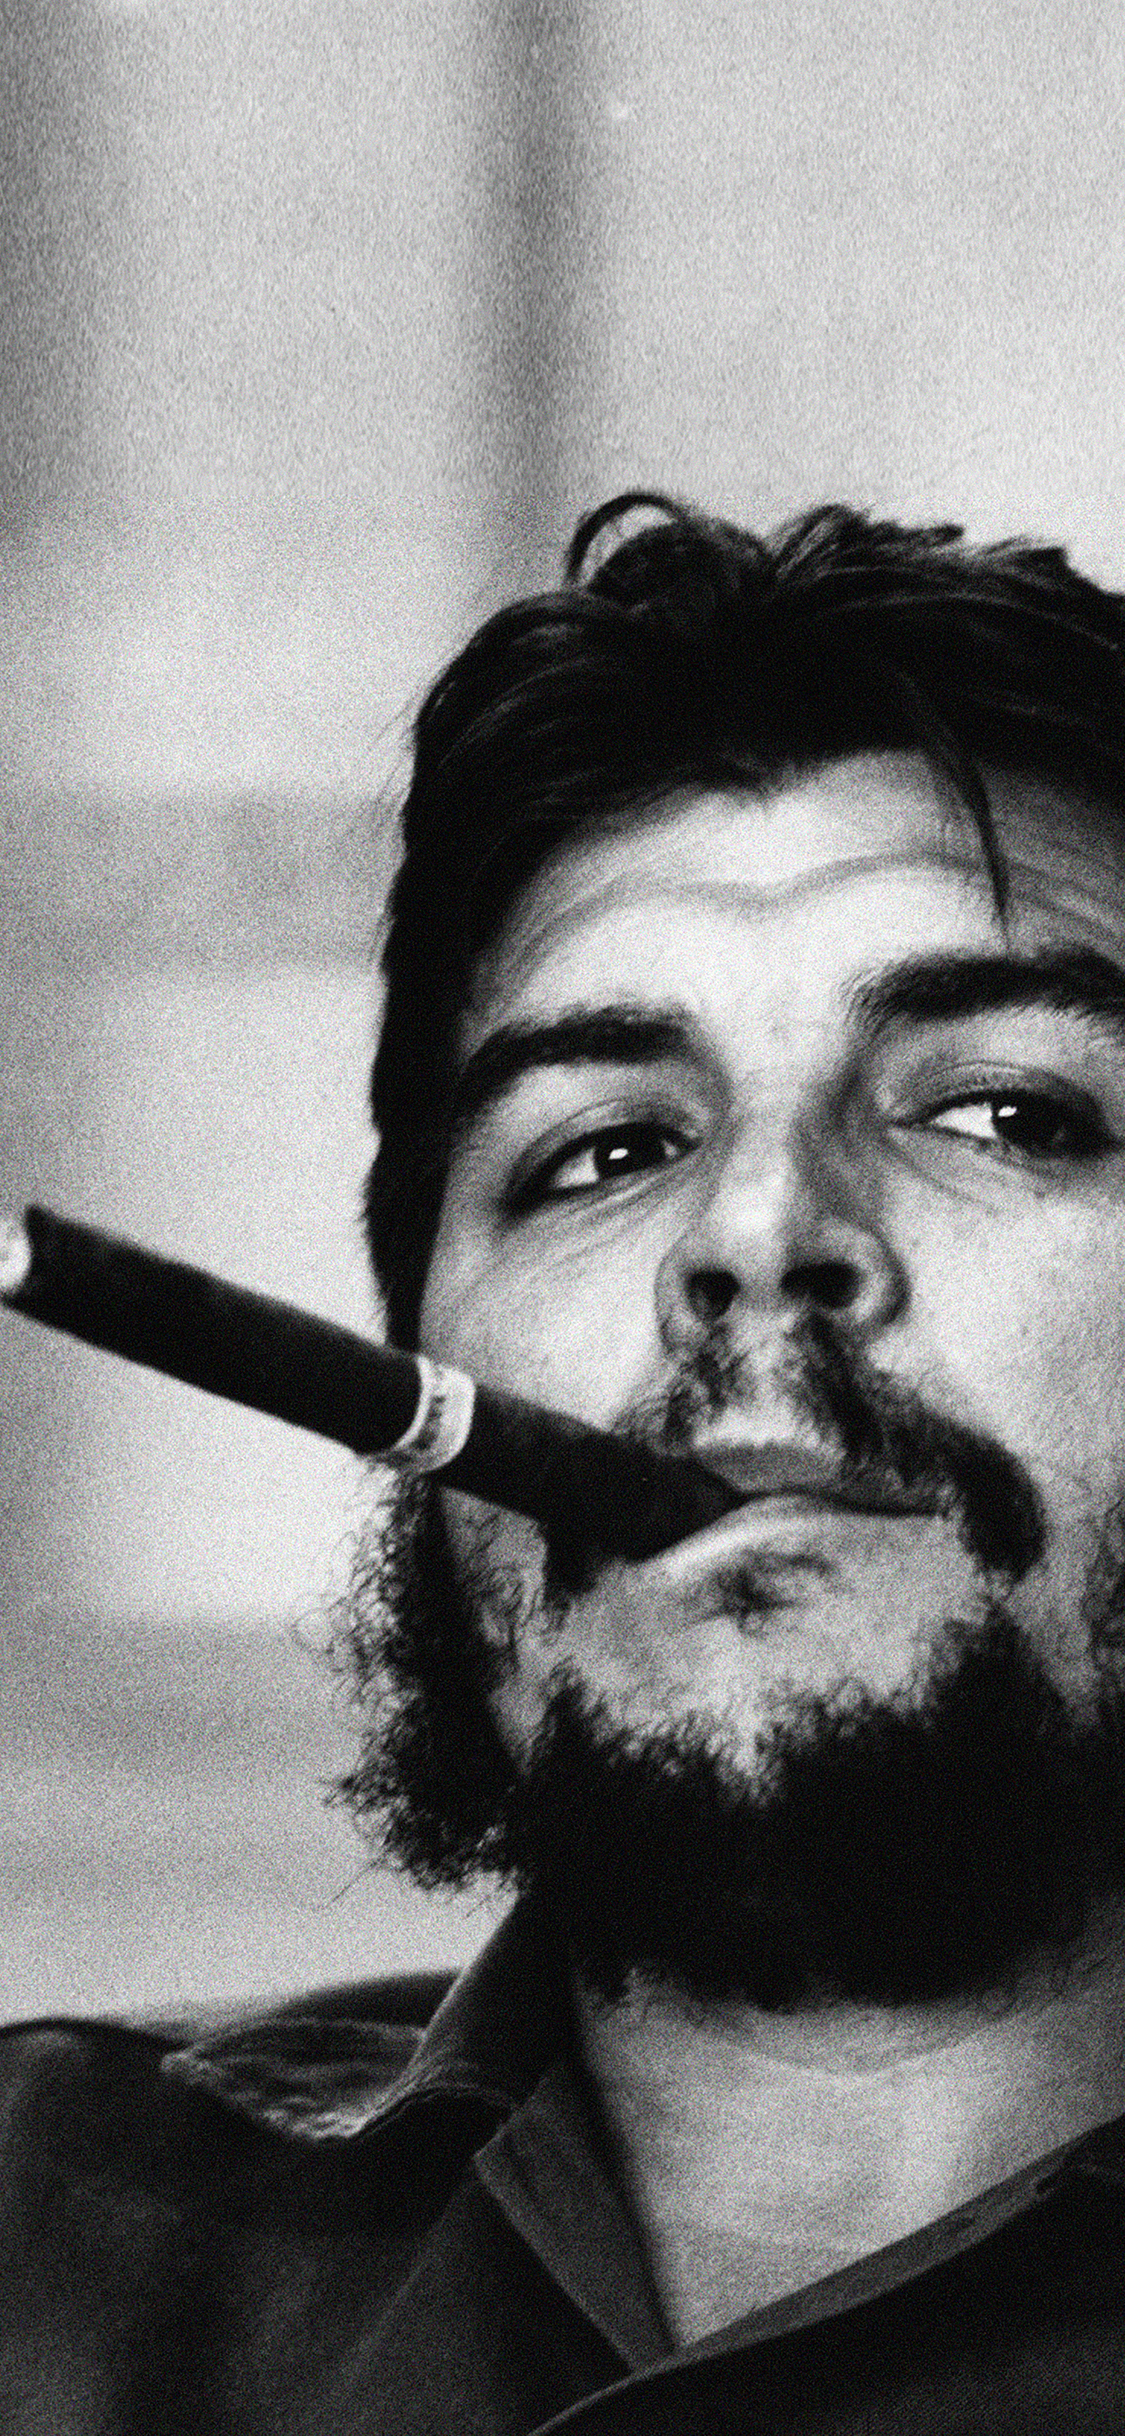 iPhoneXpapers.com-Apple-iPhone-wallpaper-ha79-wallpaper-che-guevara-face